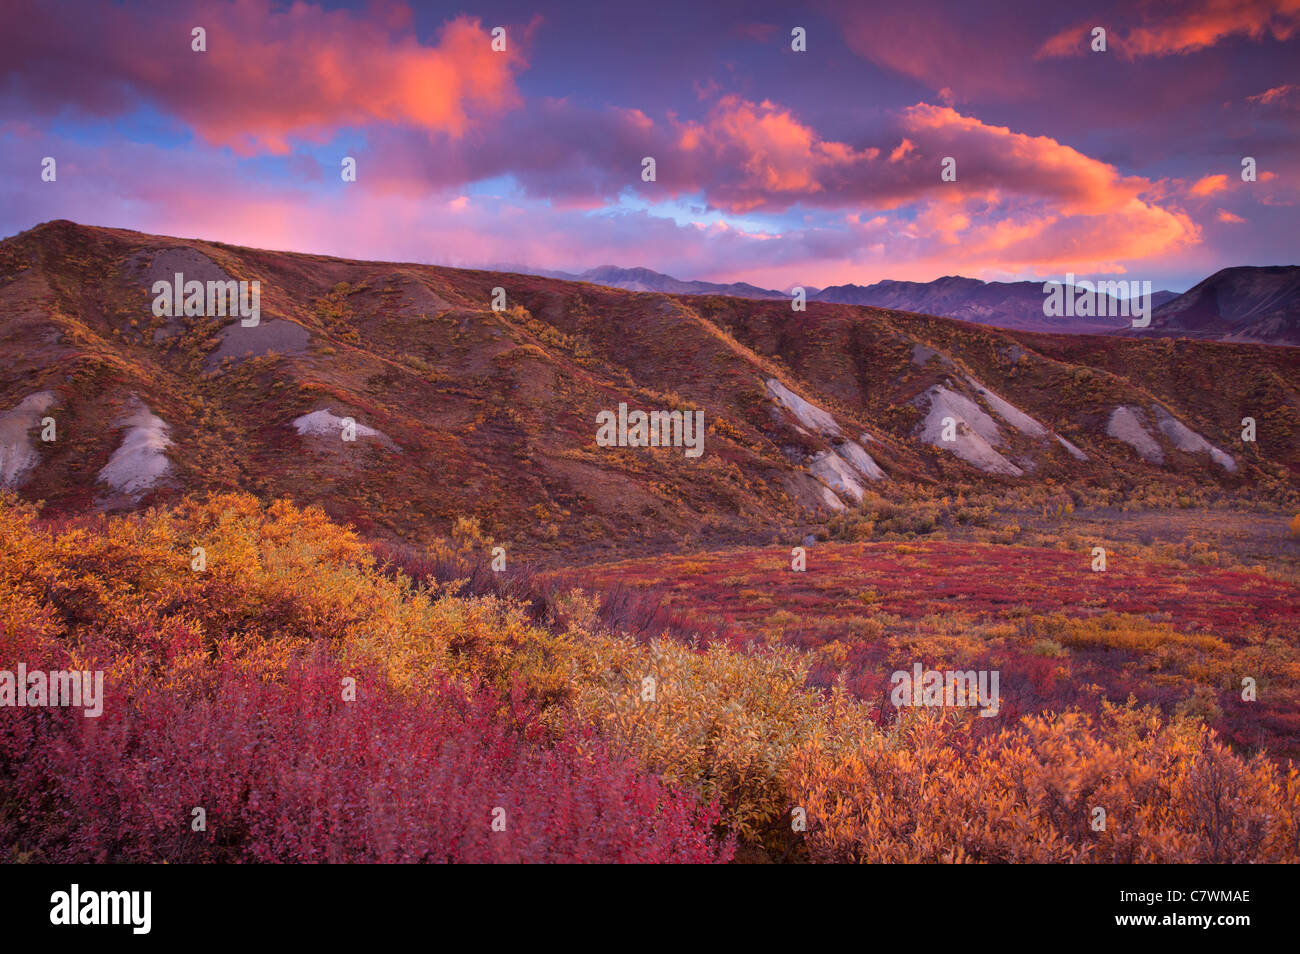 Sonnenuntergang in Sable Pass, Denali-Nationalpark, Alaska. Stockbild